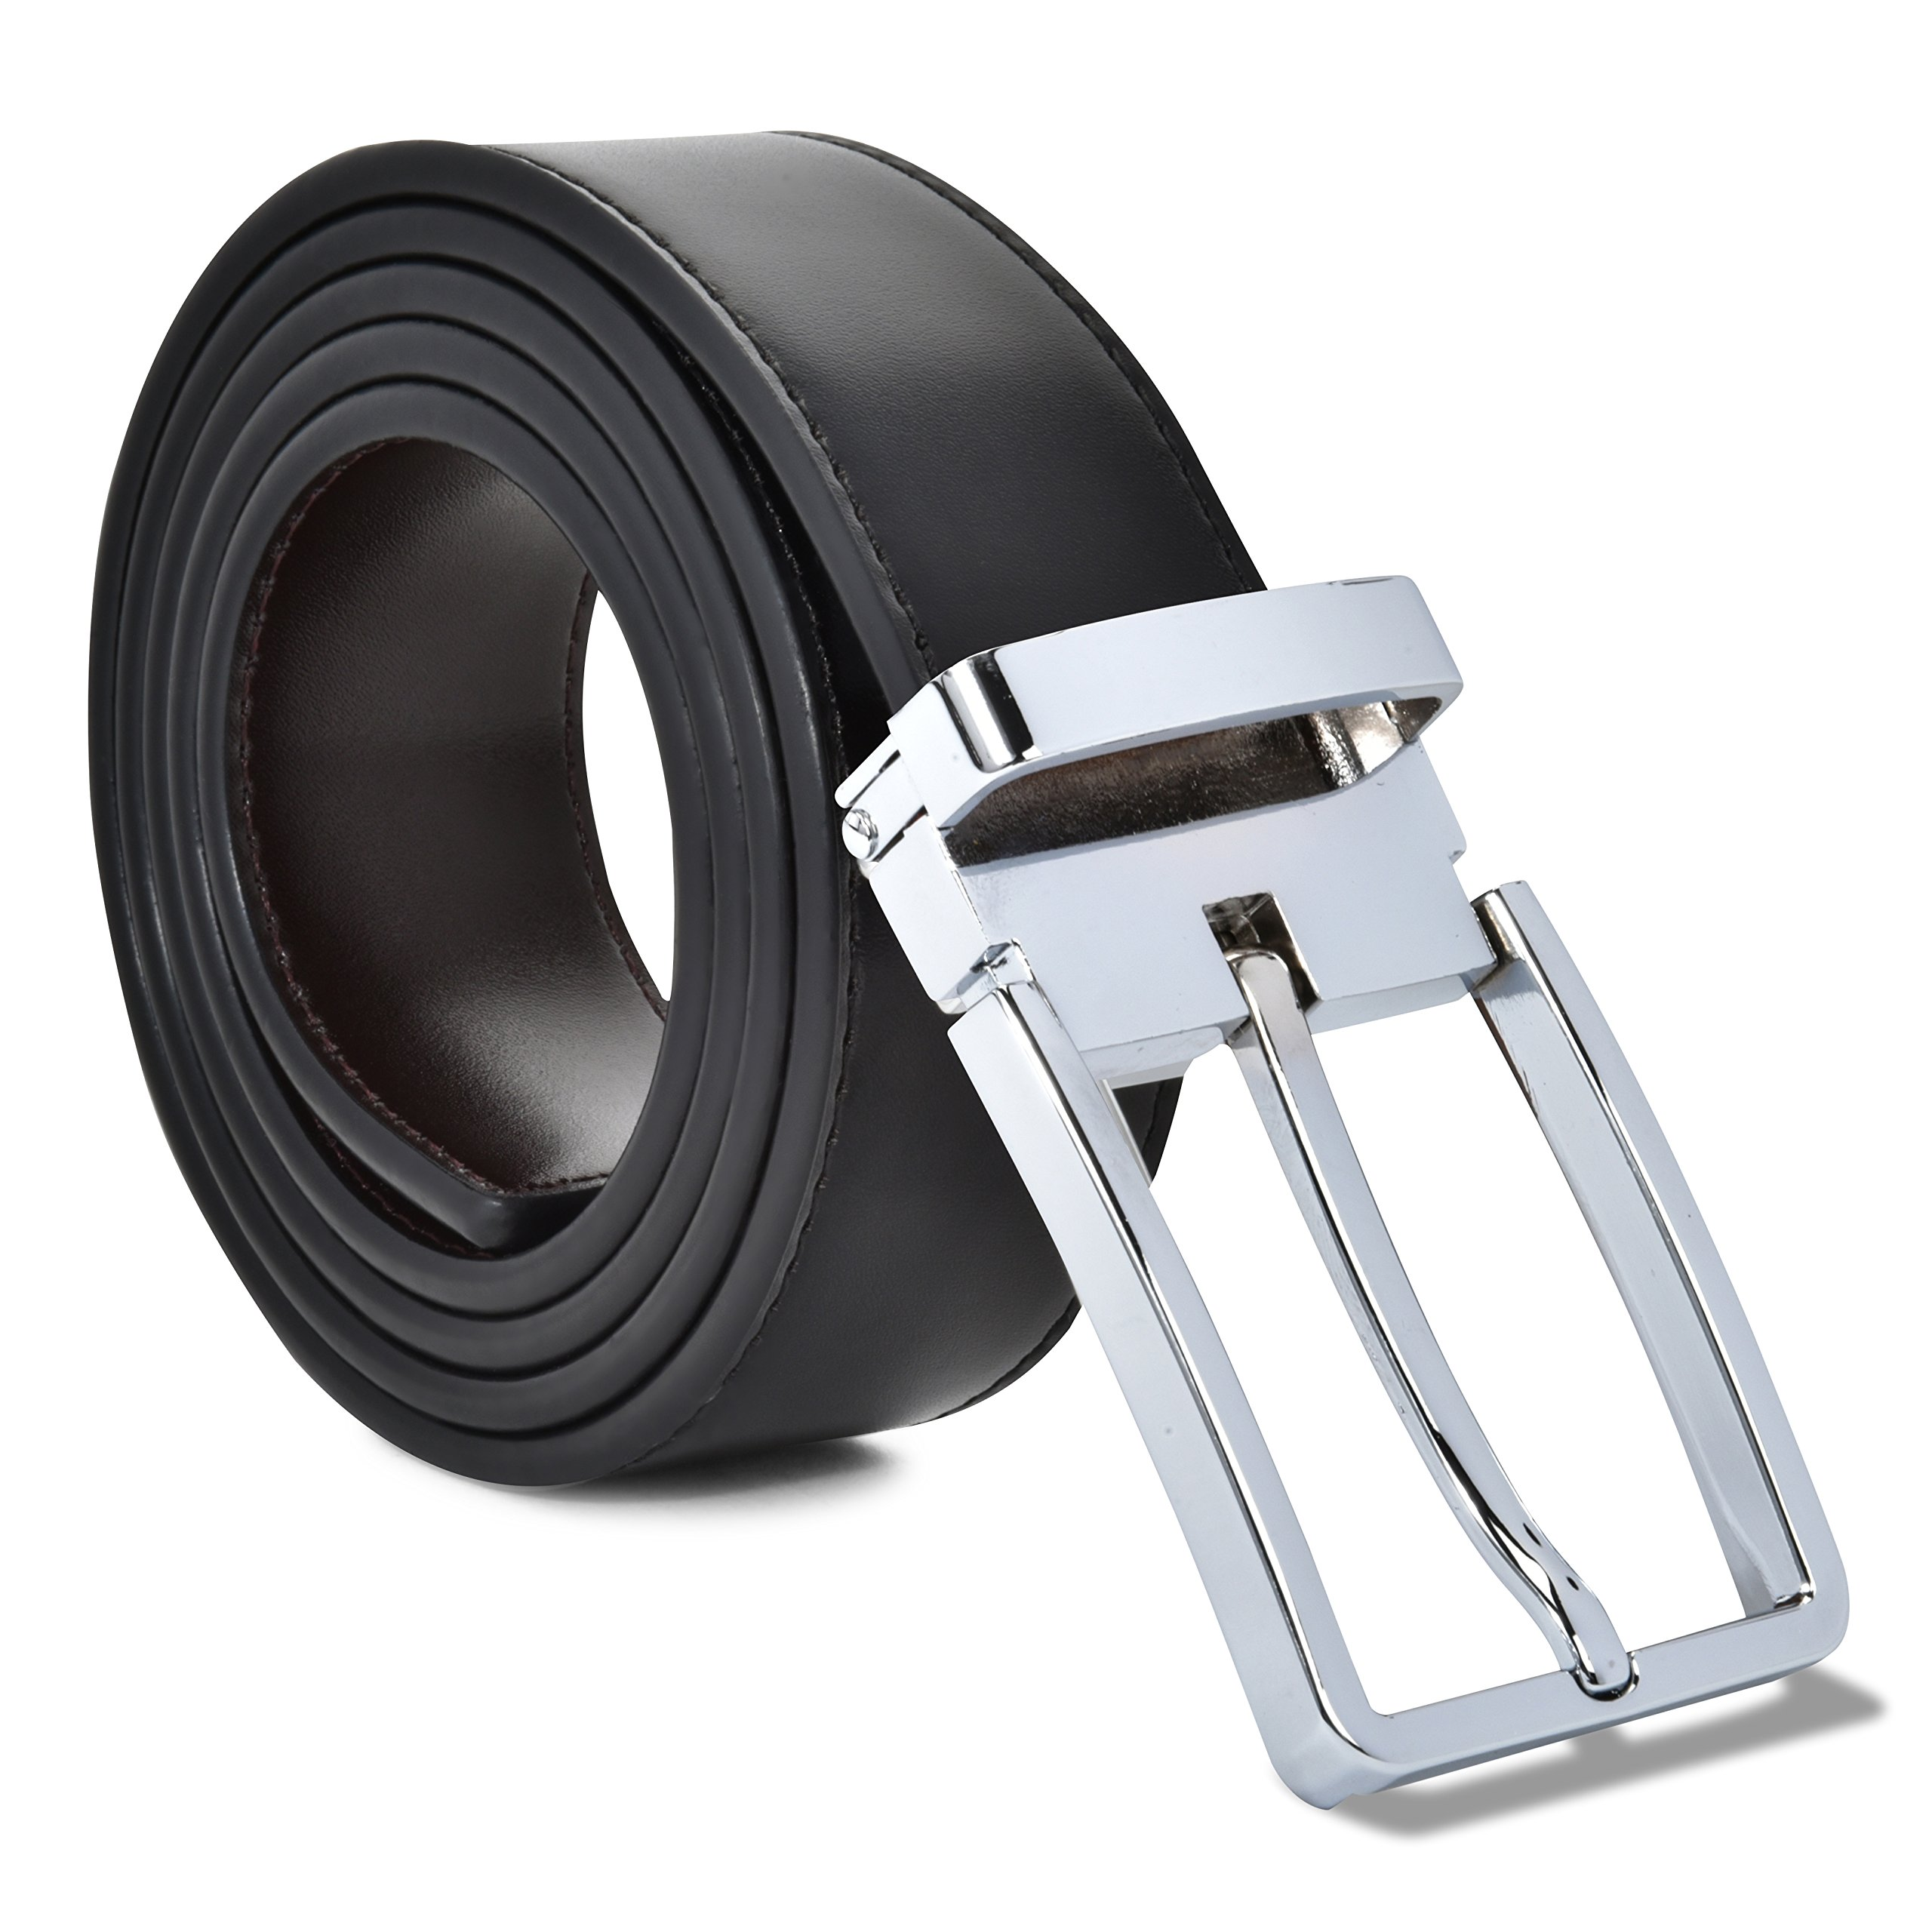 Mark Fred 100% Leather Dress Belt Grade A Genuine Italian Leather Reversible,Black/Brown Strap Silver Buckle,Small